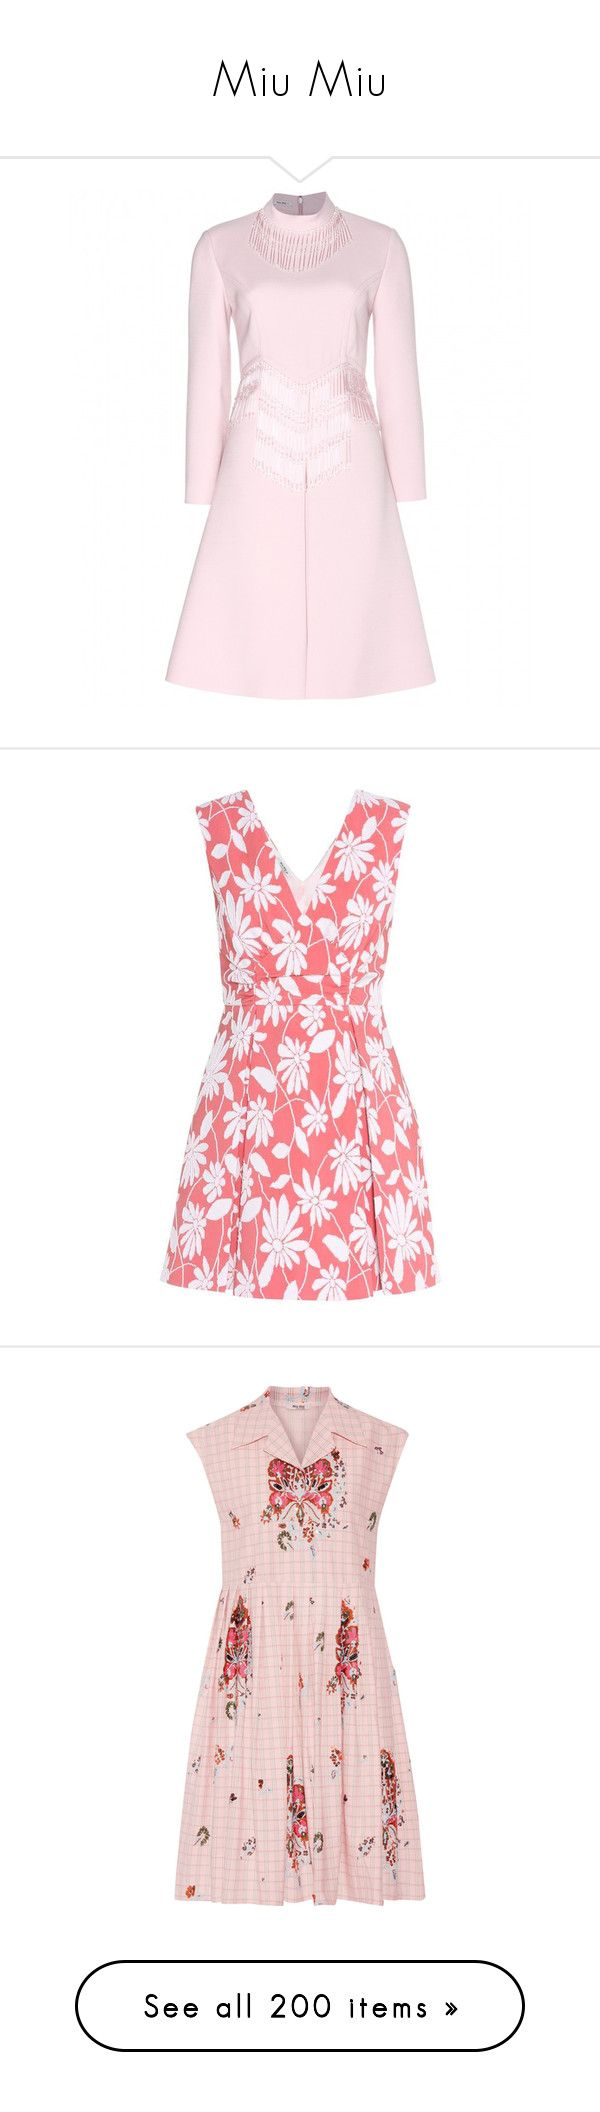 """""""Miu Miu"""" by snugget9530 ❤ liked on Polyvore featuring dresses, miu miu, fringe dress, pink fringe dress, miu miu dress, glass dress, pink, pink red dress, red dress and jacquard dress"""